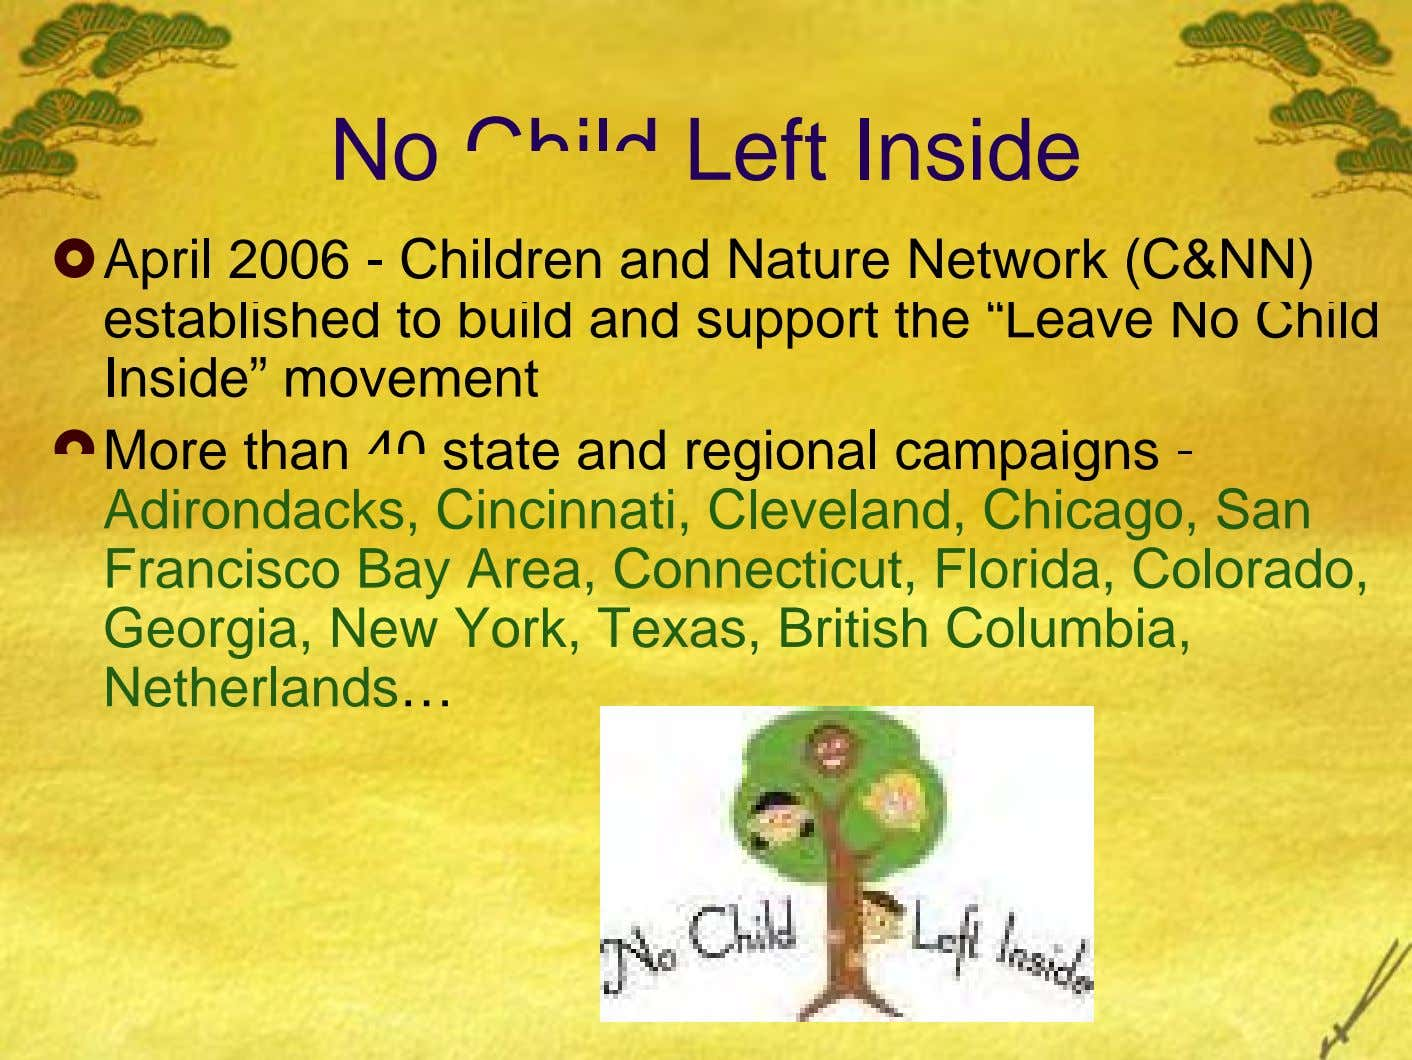 No Child Left Inside April 2006 - Children and Nature Network (C&NN) established to build and